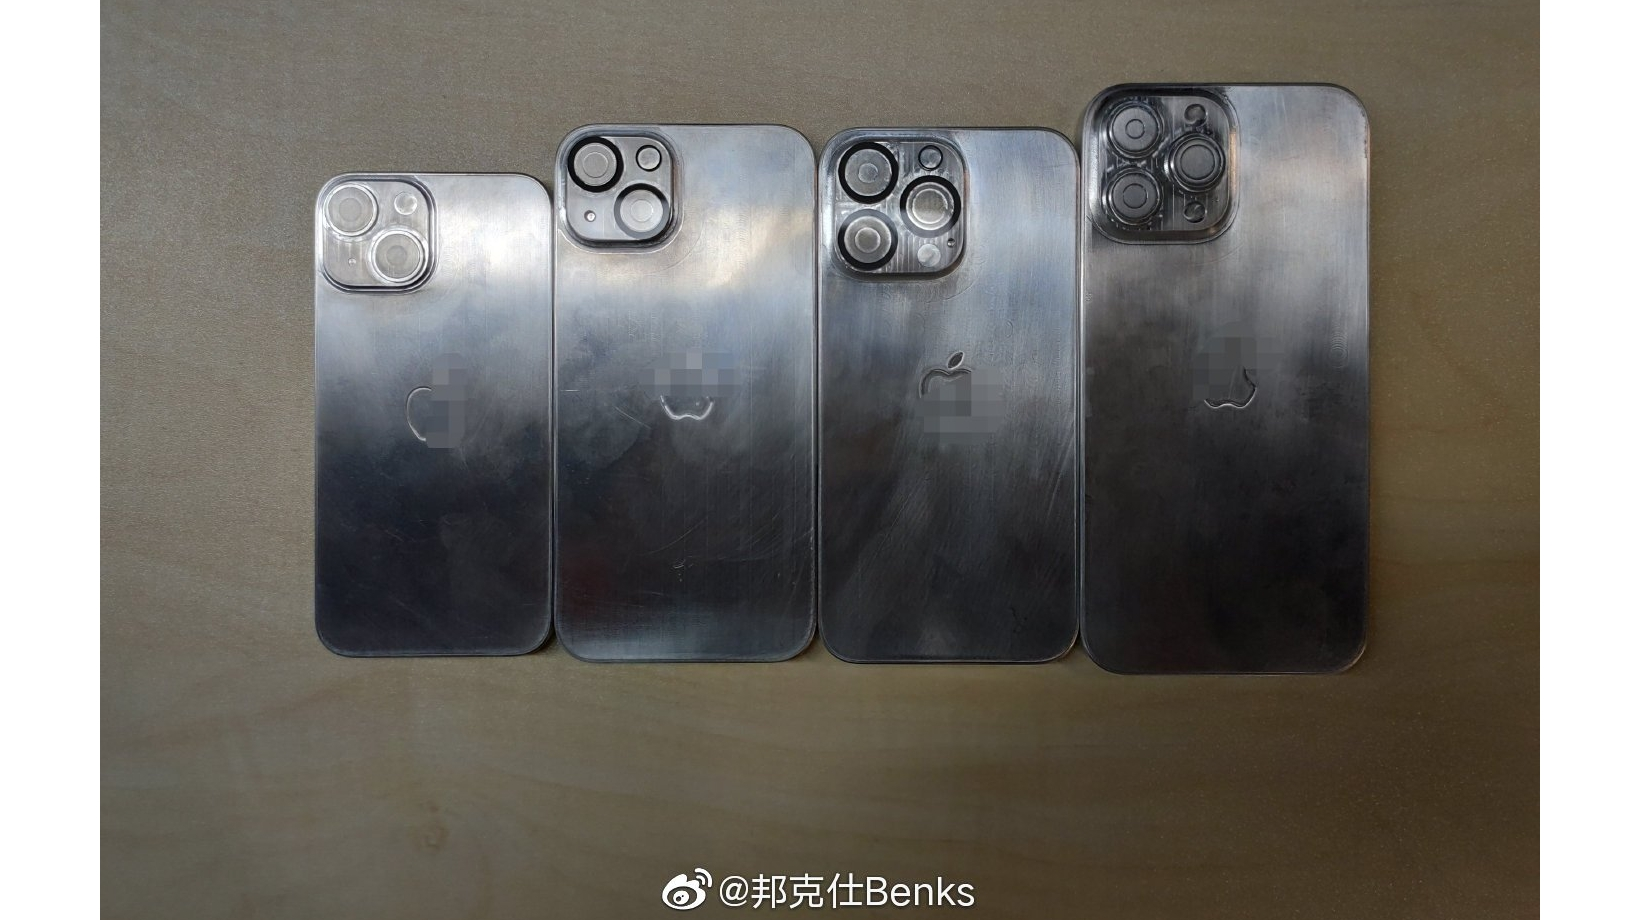 A photo showing chassis models of the iPhone 13 range